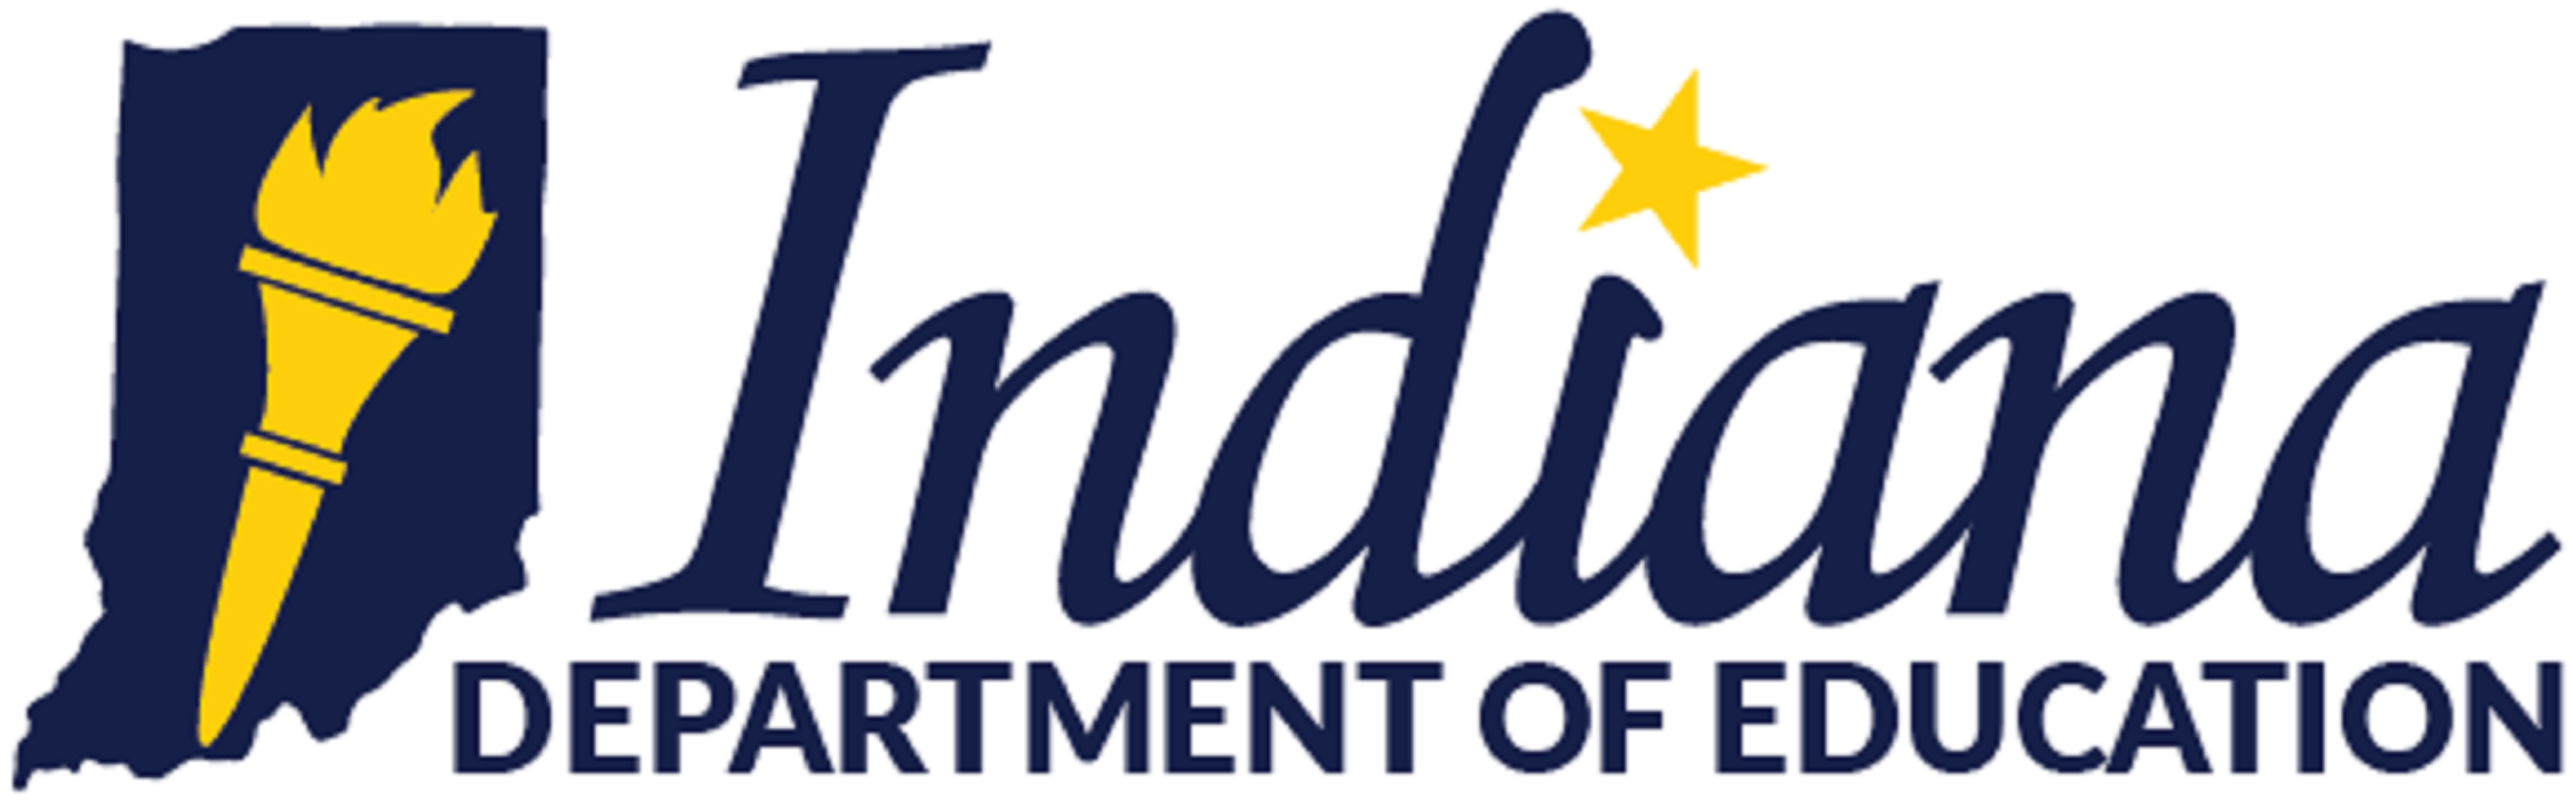 Education Department Launches New >> Indiana Department Of Education Launches New Teacher Recruitment